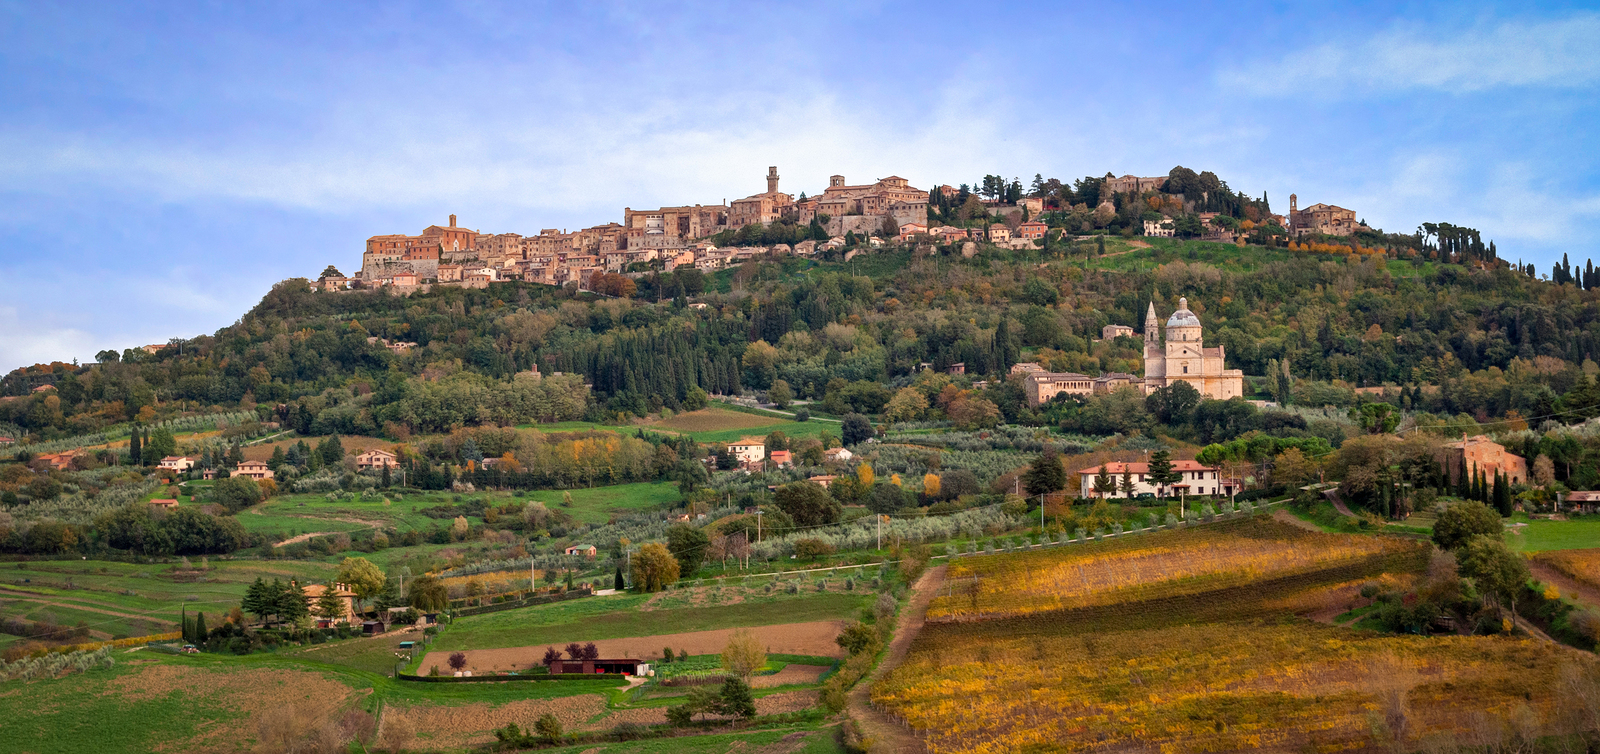 Montepulciano Tuscany Italy view of the village at the top of a hill